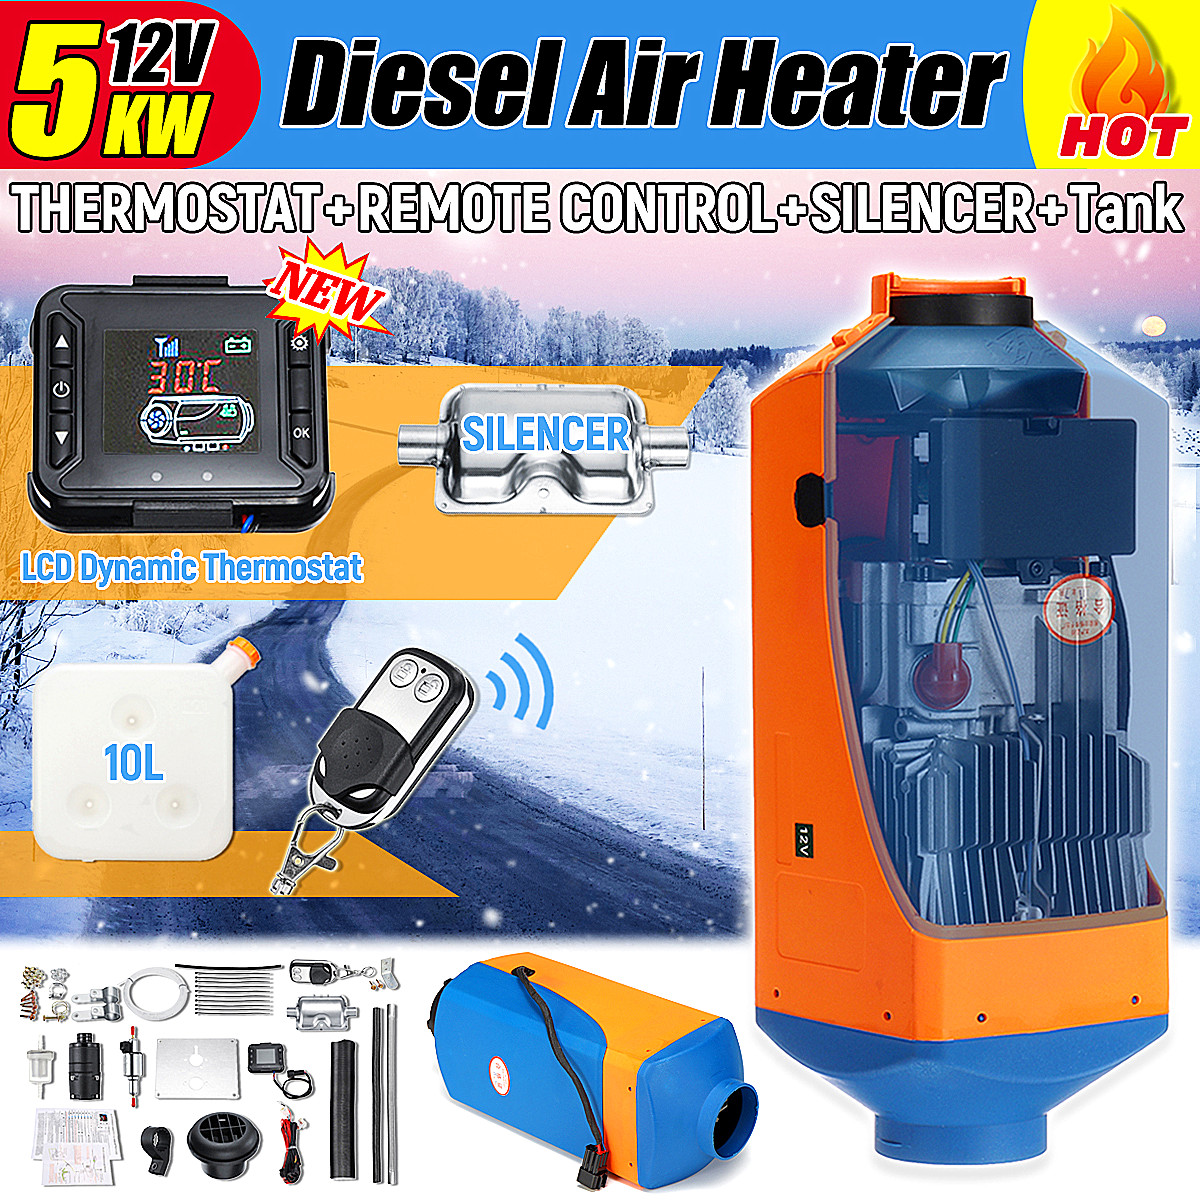 5kw 12v car heater air diesels heater parking heater with remote